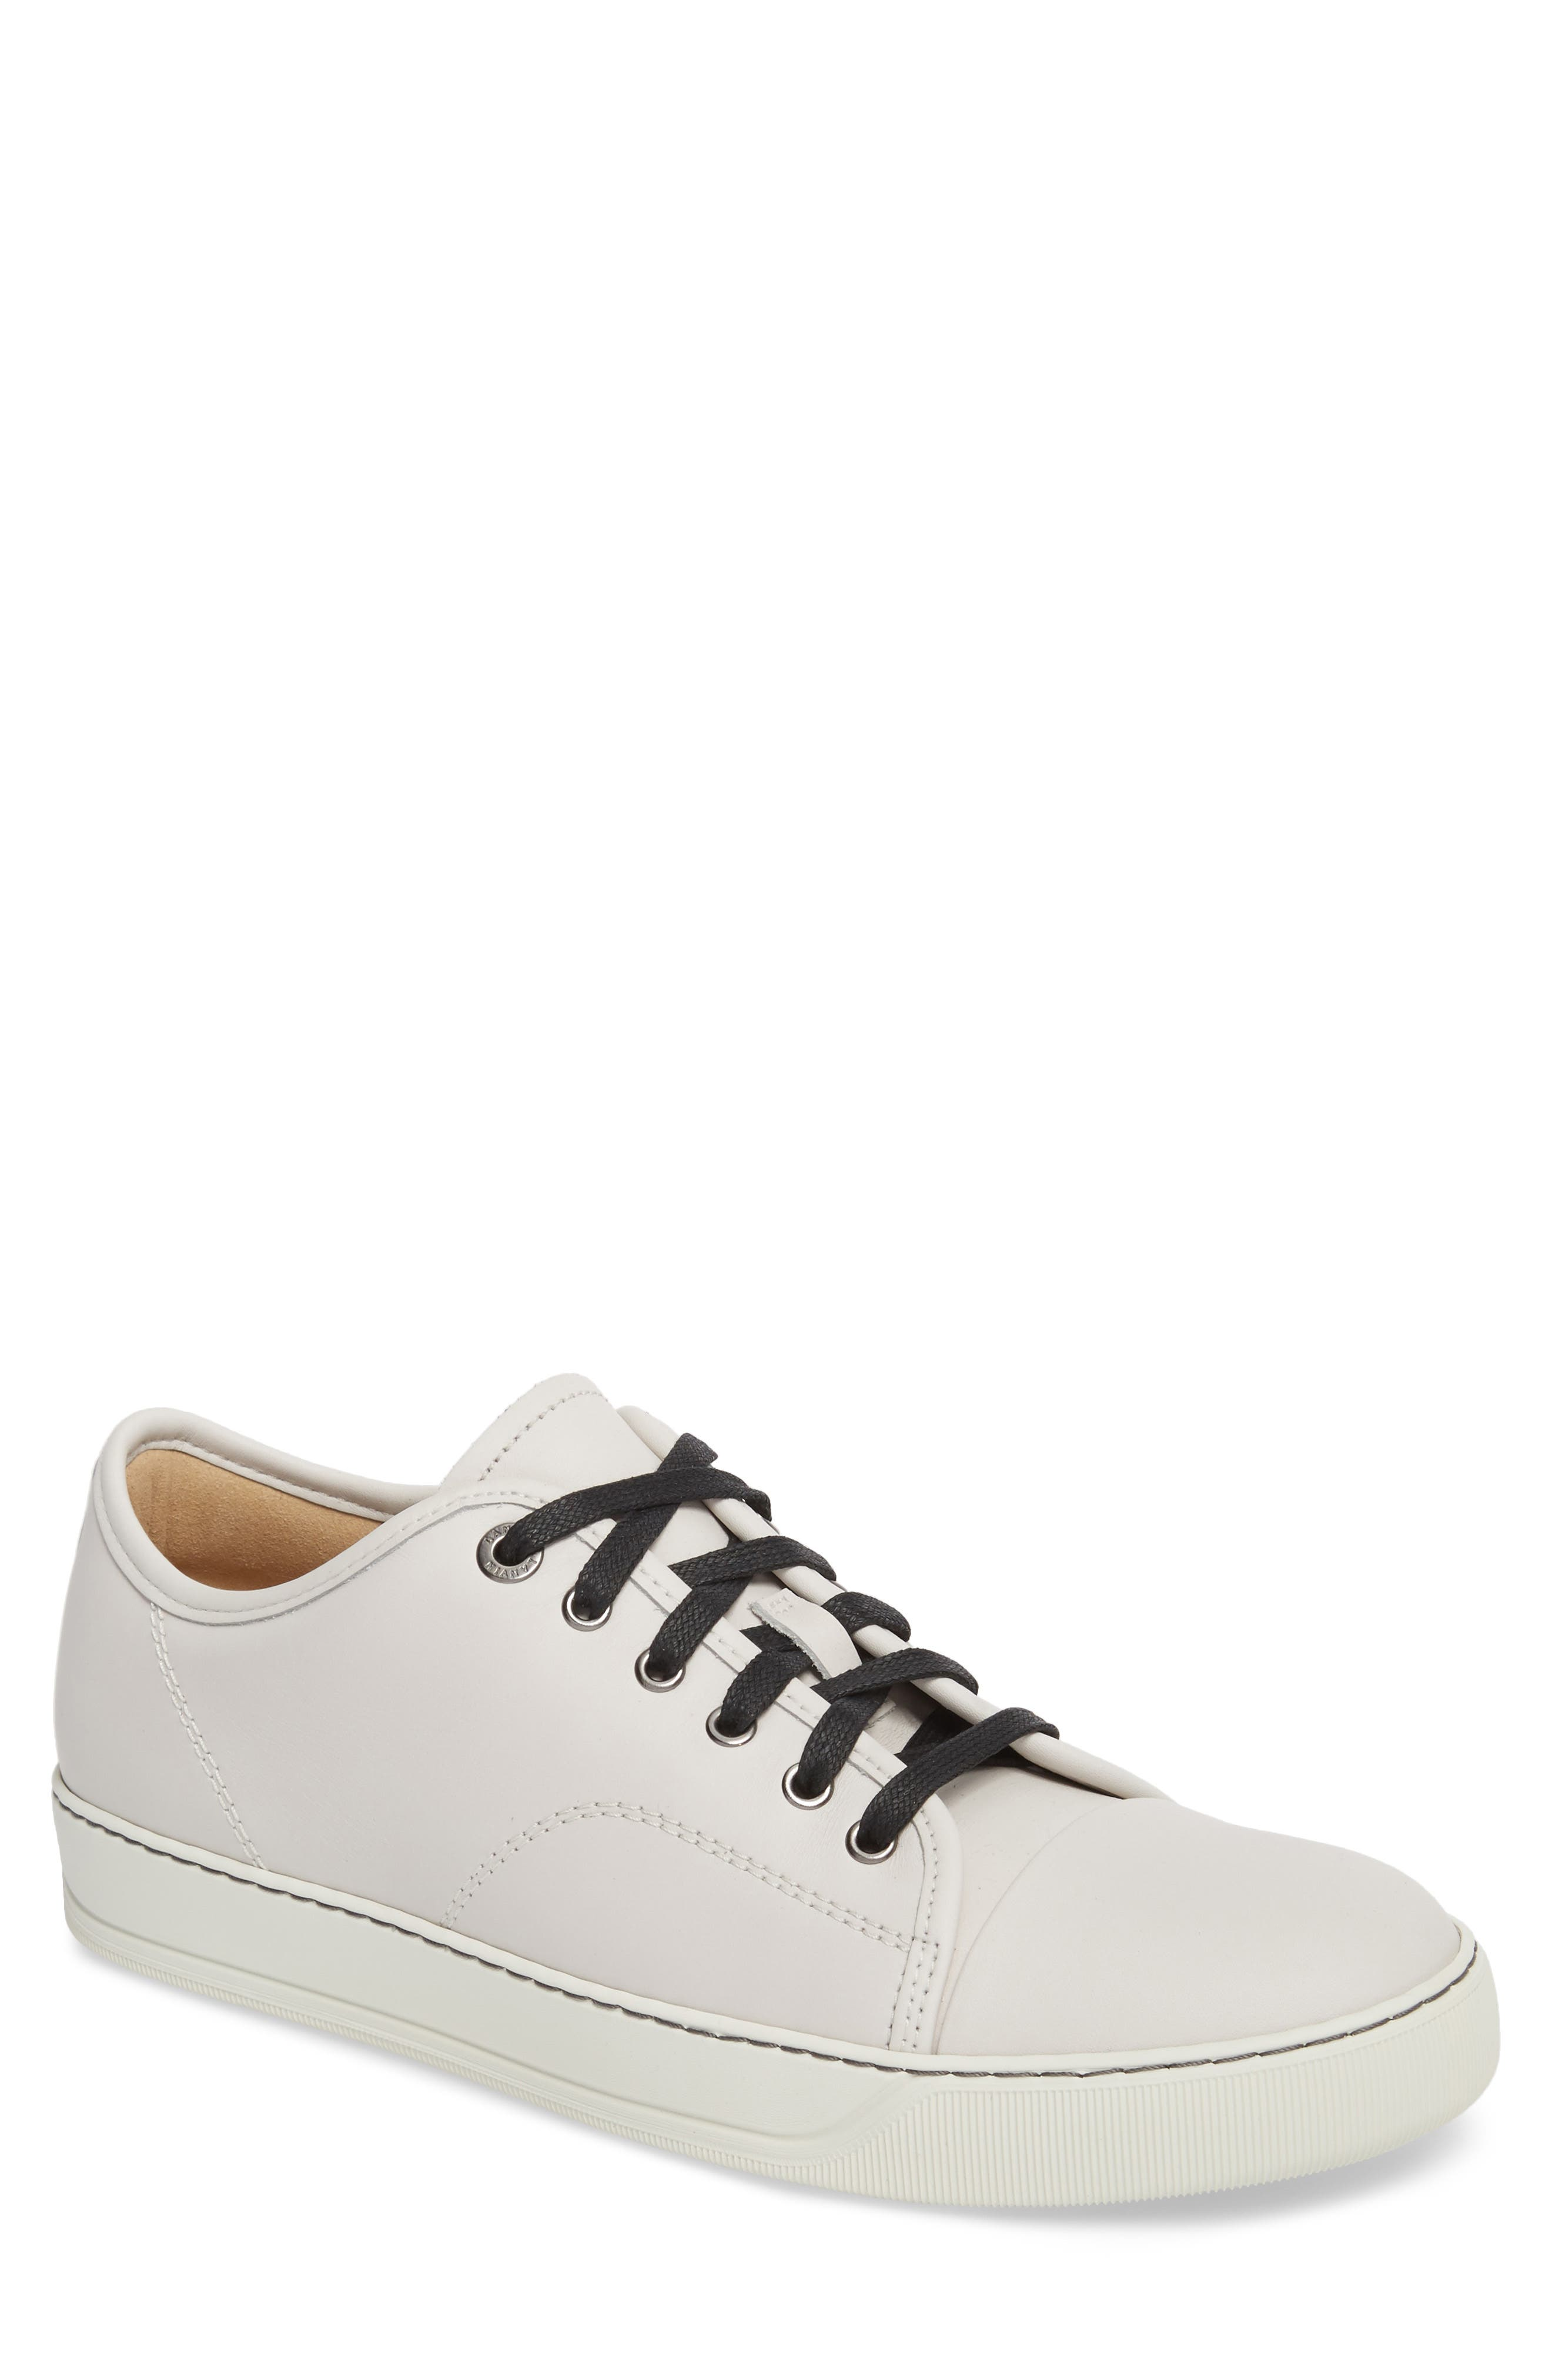 LANVIN,                             Low Top Sneaker,                             Main thumbnail 1, color,                             102